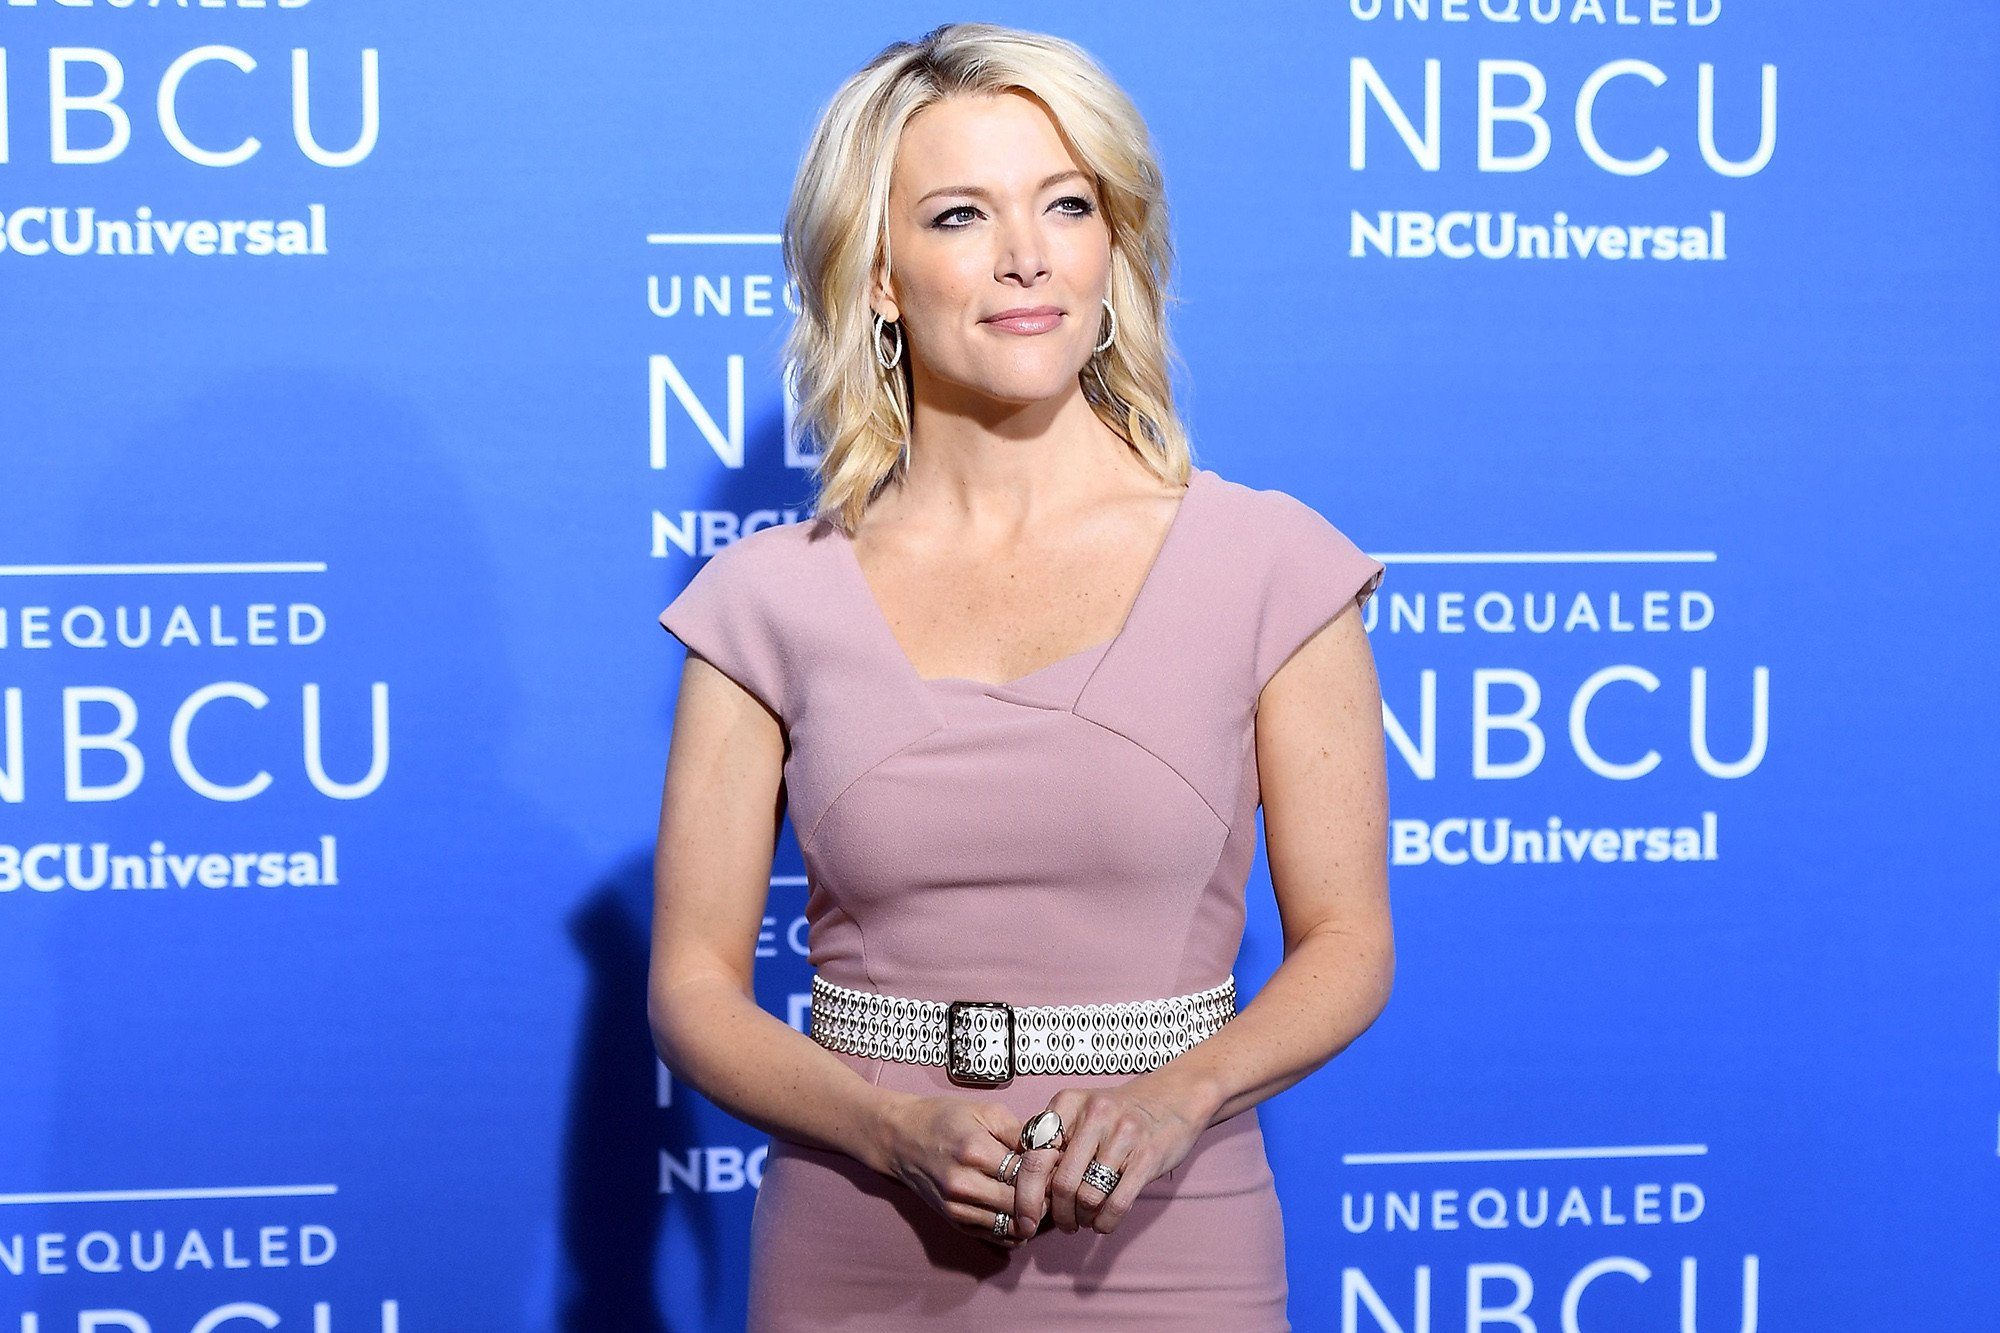 Megyn Kelly tickets draw more than Yankees box seats at auction